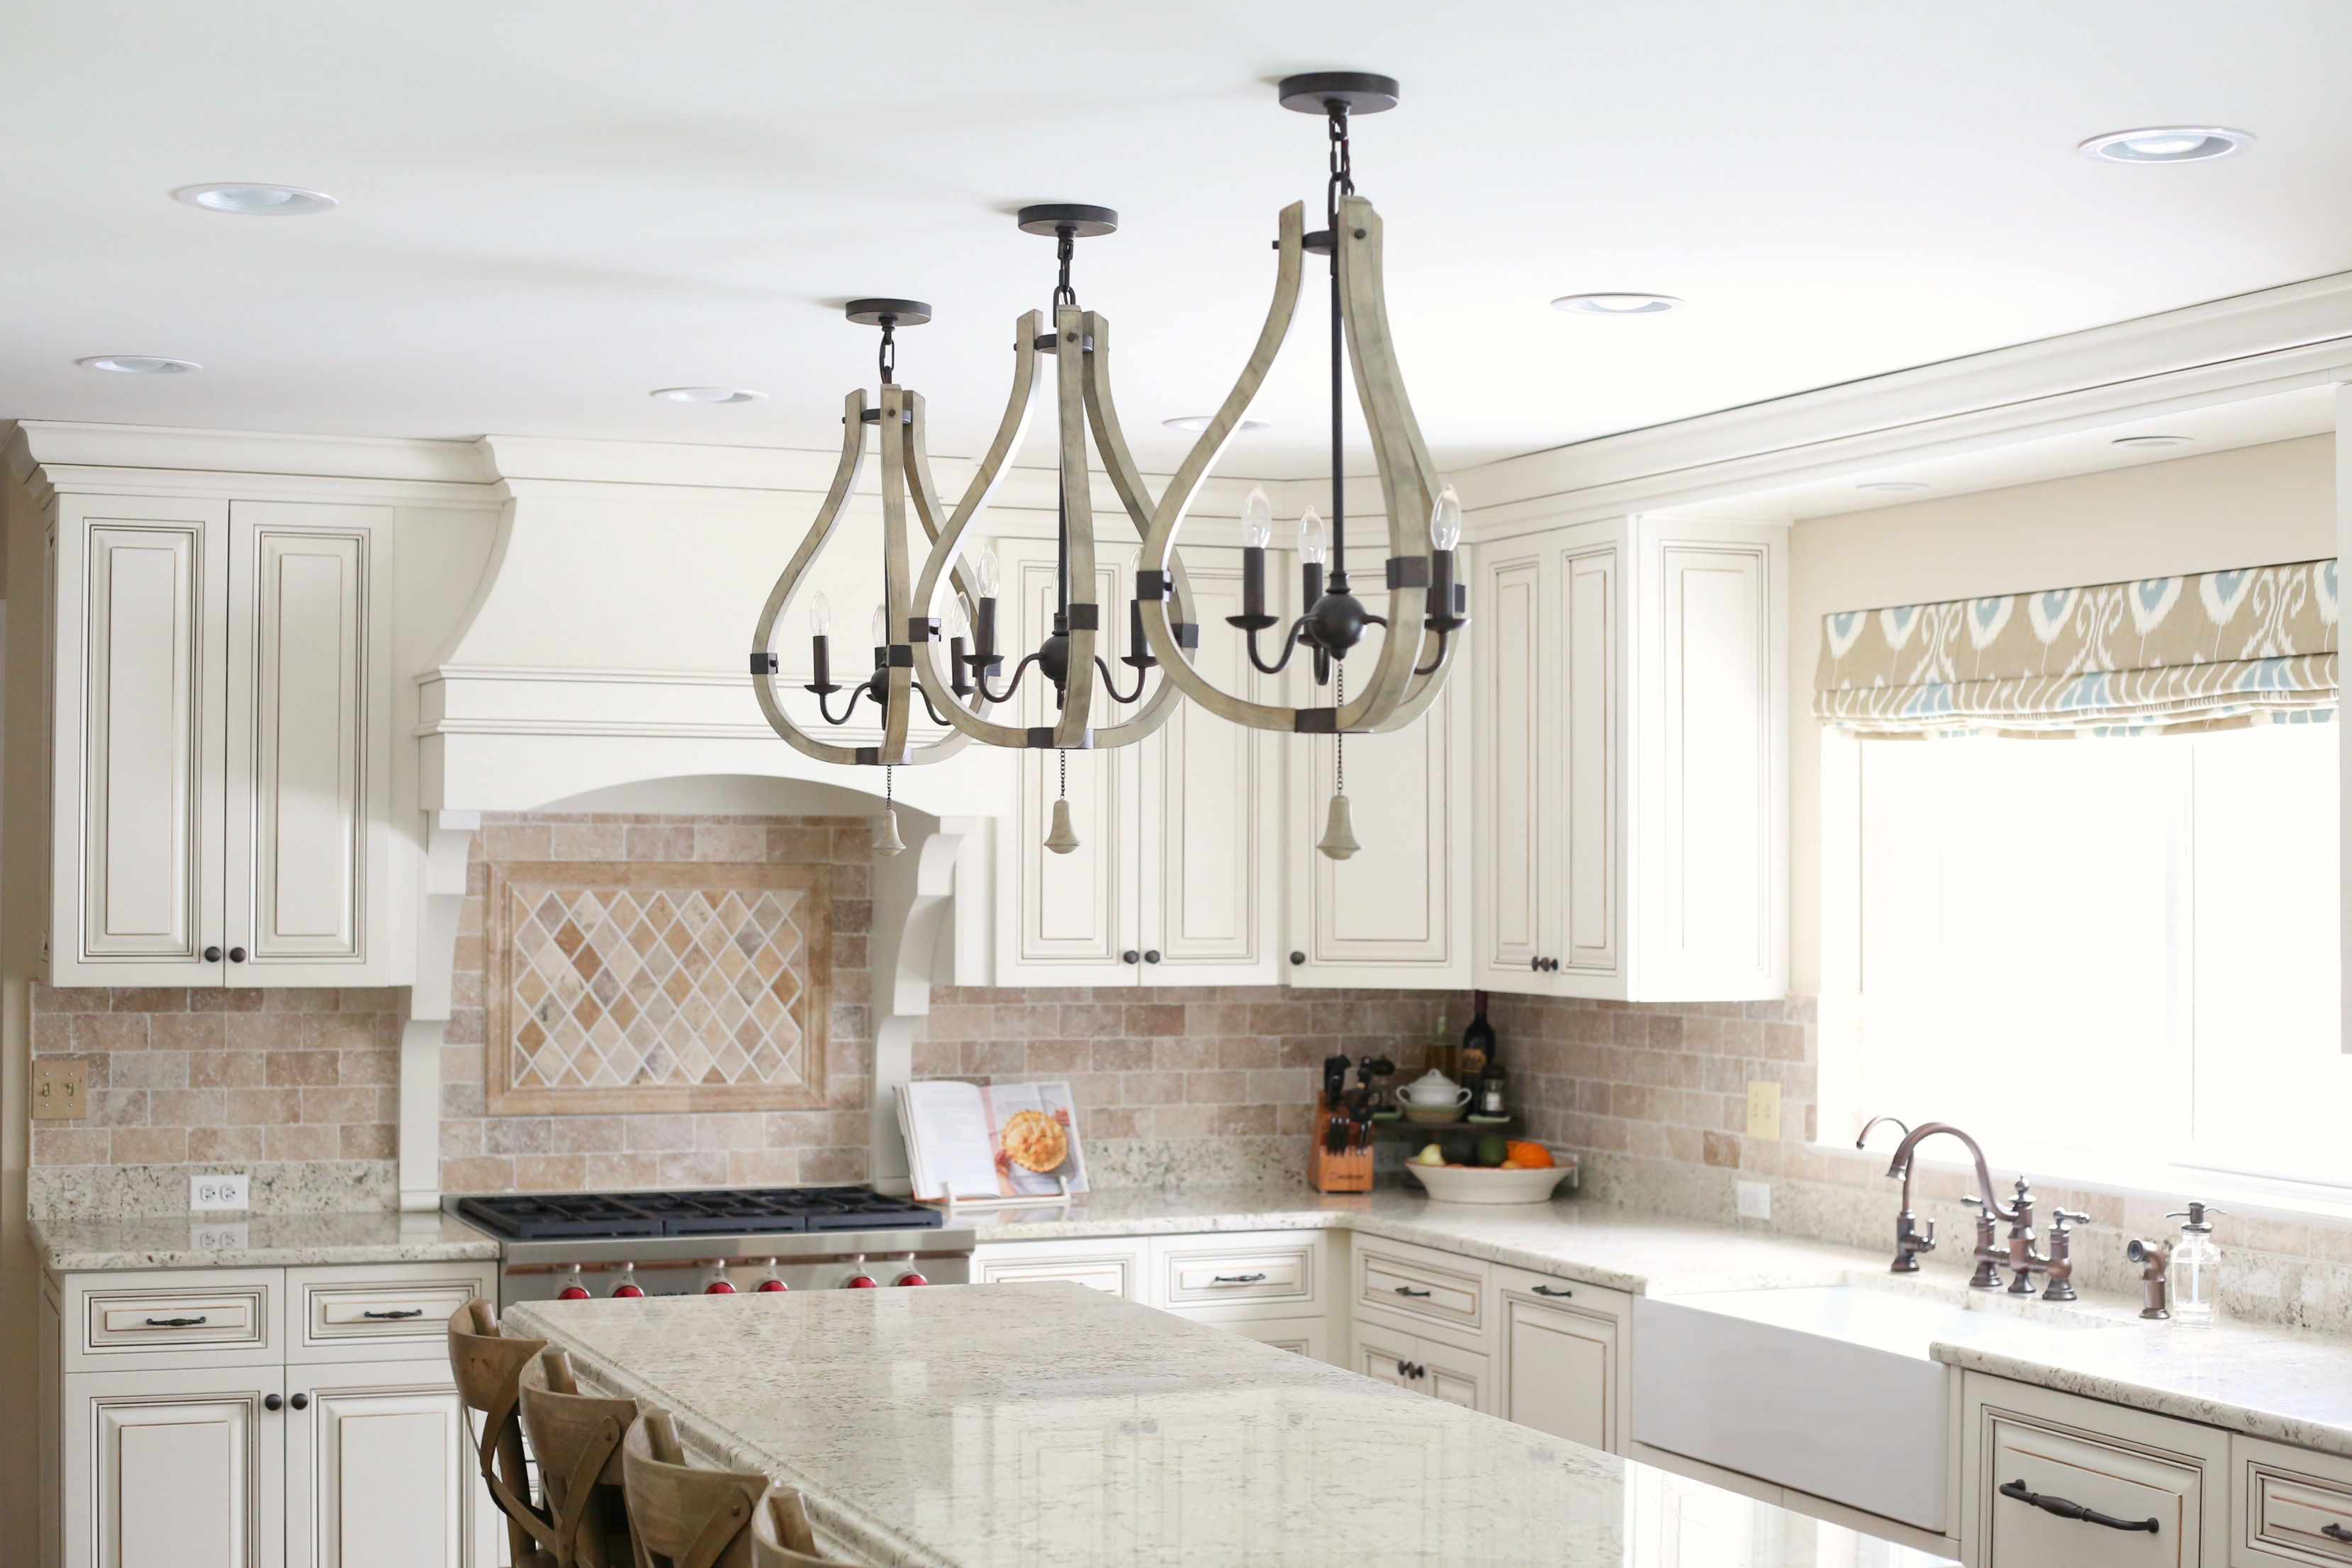 astounding kitchen lighting before after | The NEW Cottage Home Before and After Kitchen Makeover ...